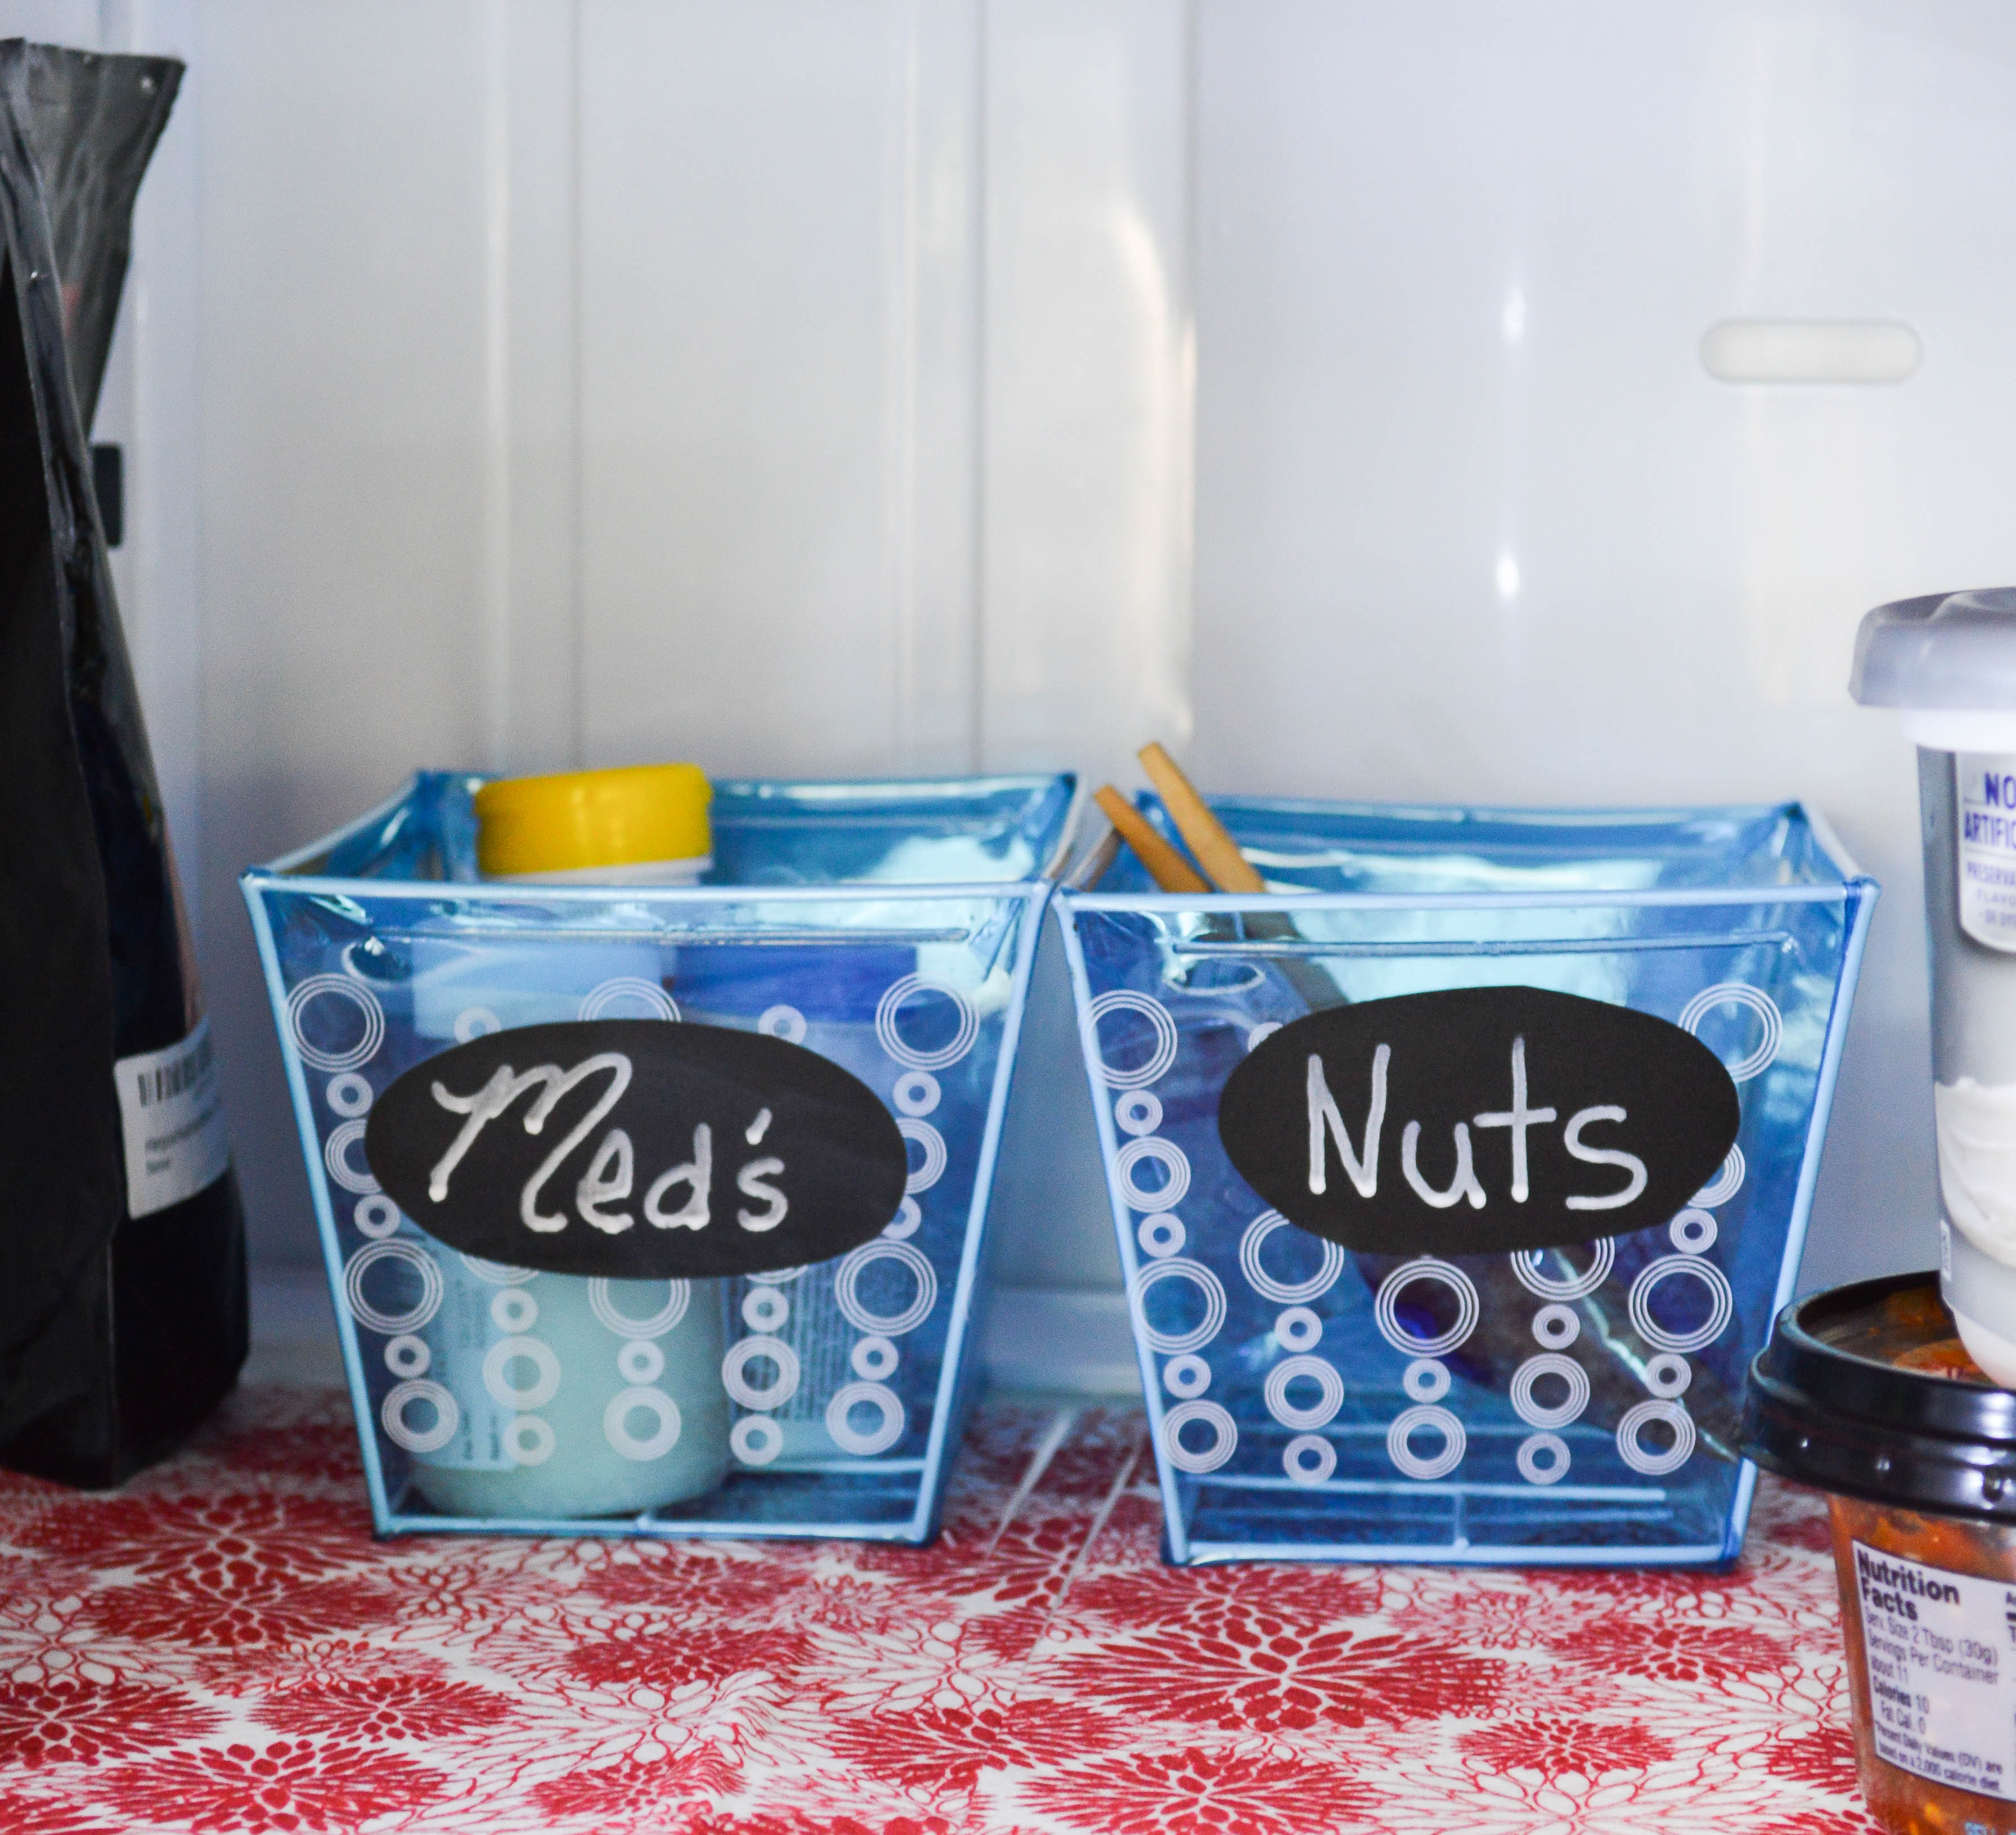 Use bins in the refrigerator to maximize storage space and make it easy on the kids to grab snacks.